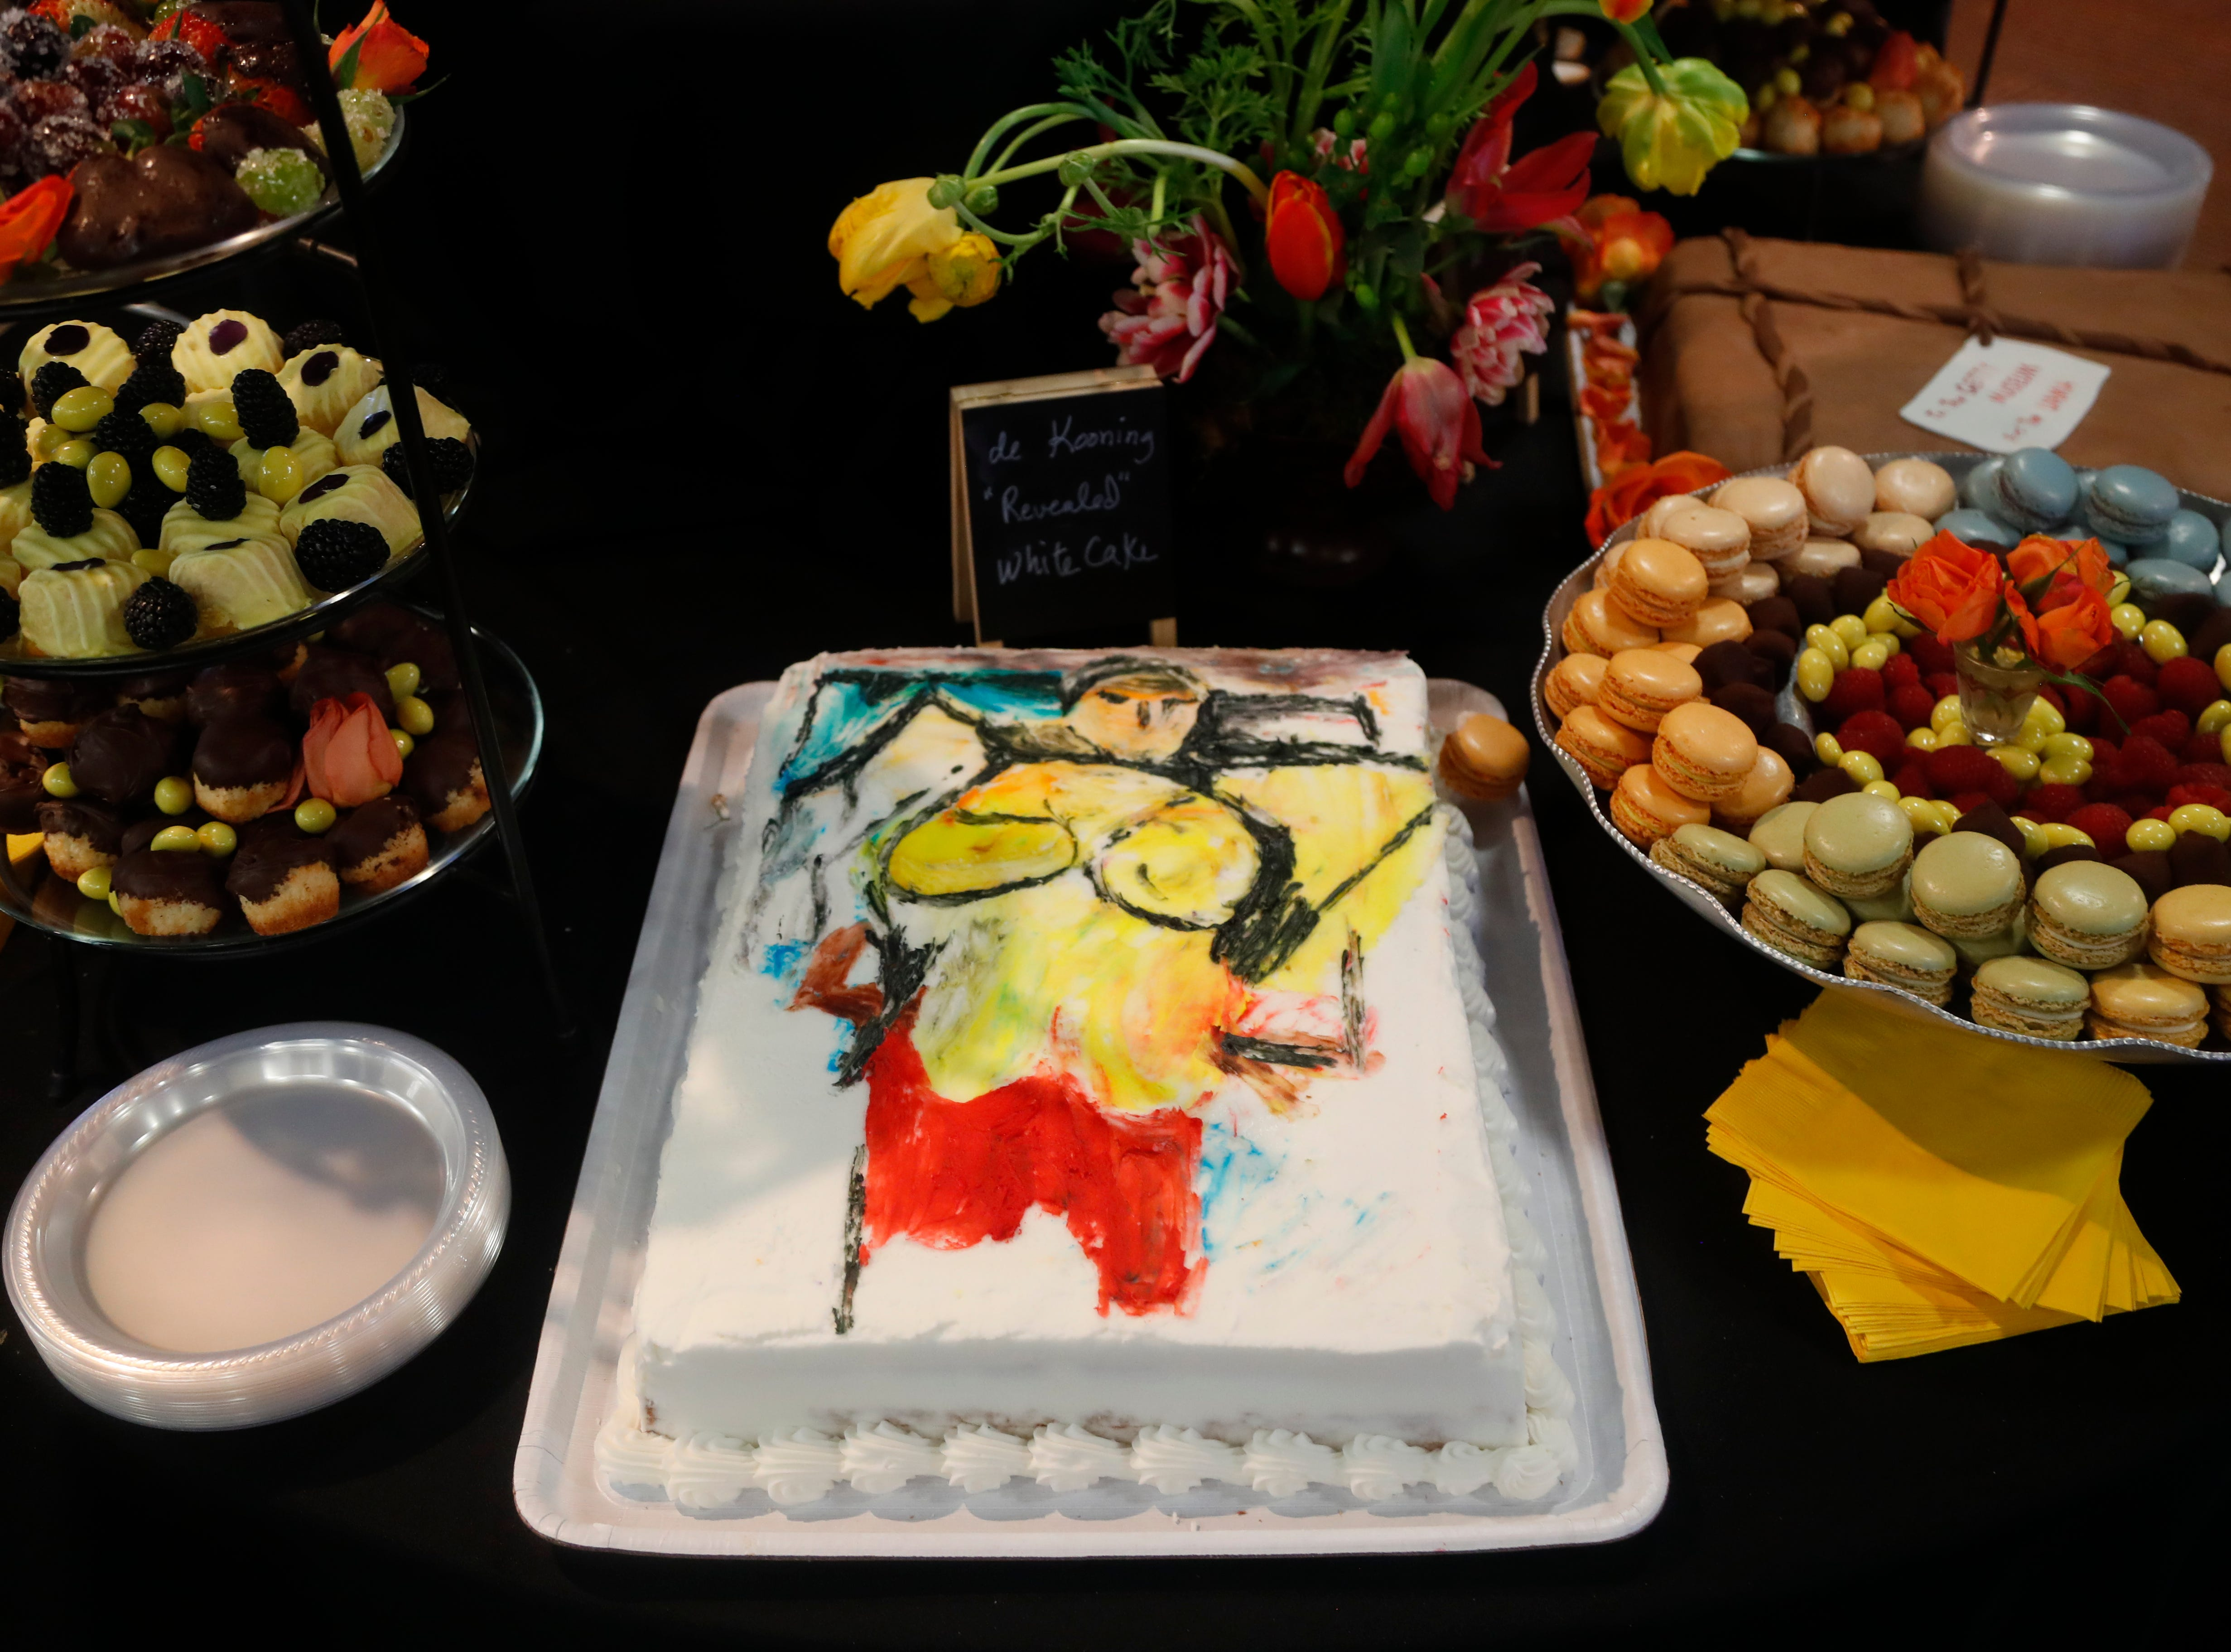 """A cake representing Willem de Kooning's """"Woman-Ochre,"""" stolen in 1985, is seen at a viewing of the newly recovered artwork at the University of Arizona Museum of Art in Tucson on March 17, 2019."""